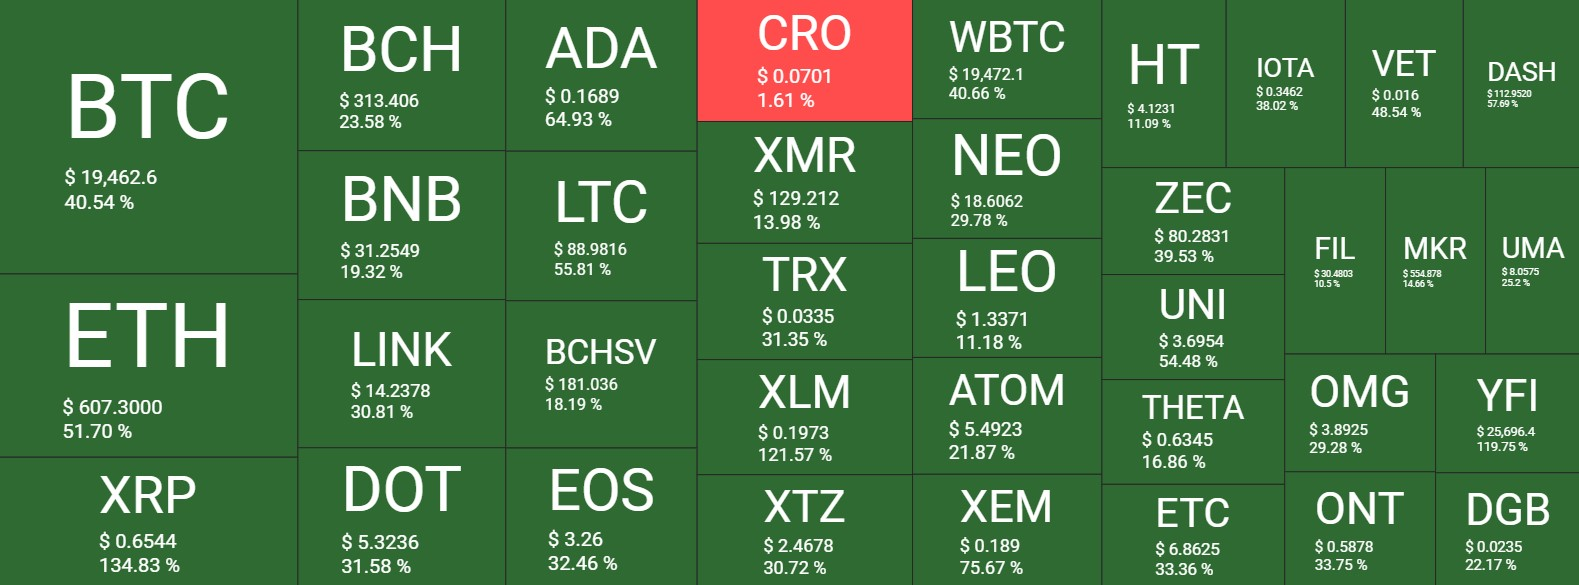 November Cryptocurrency Performance Heatmap